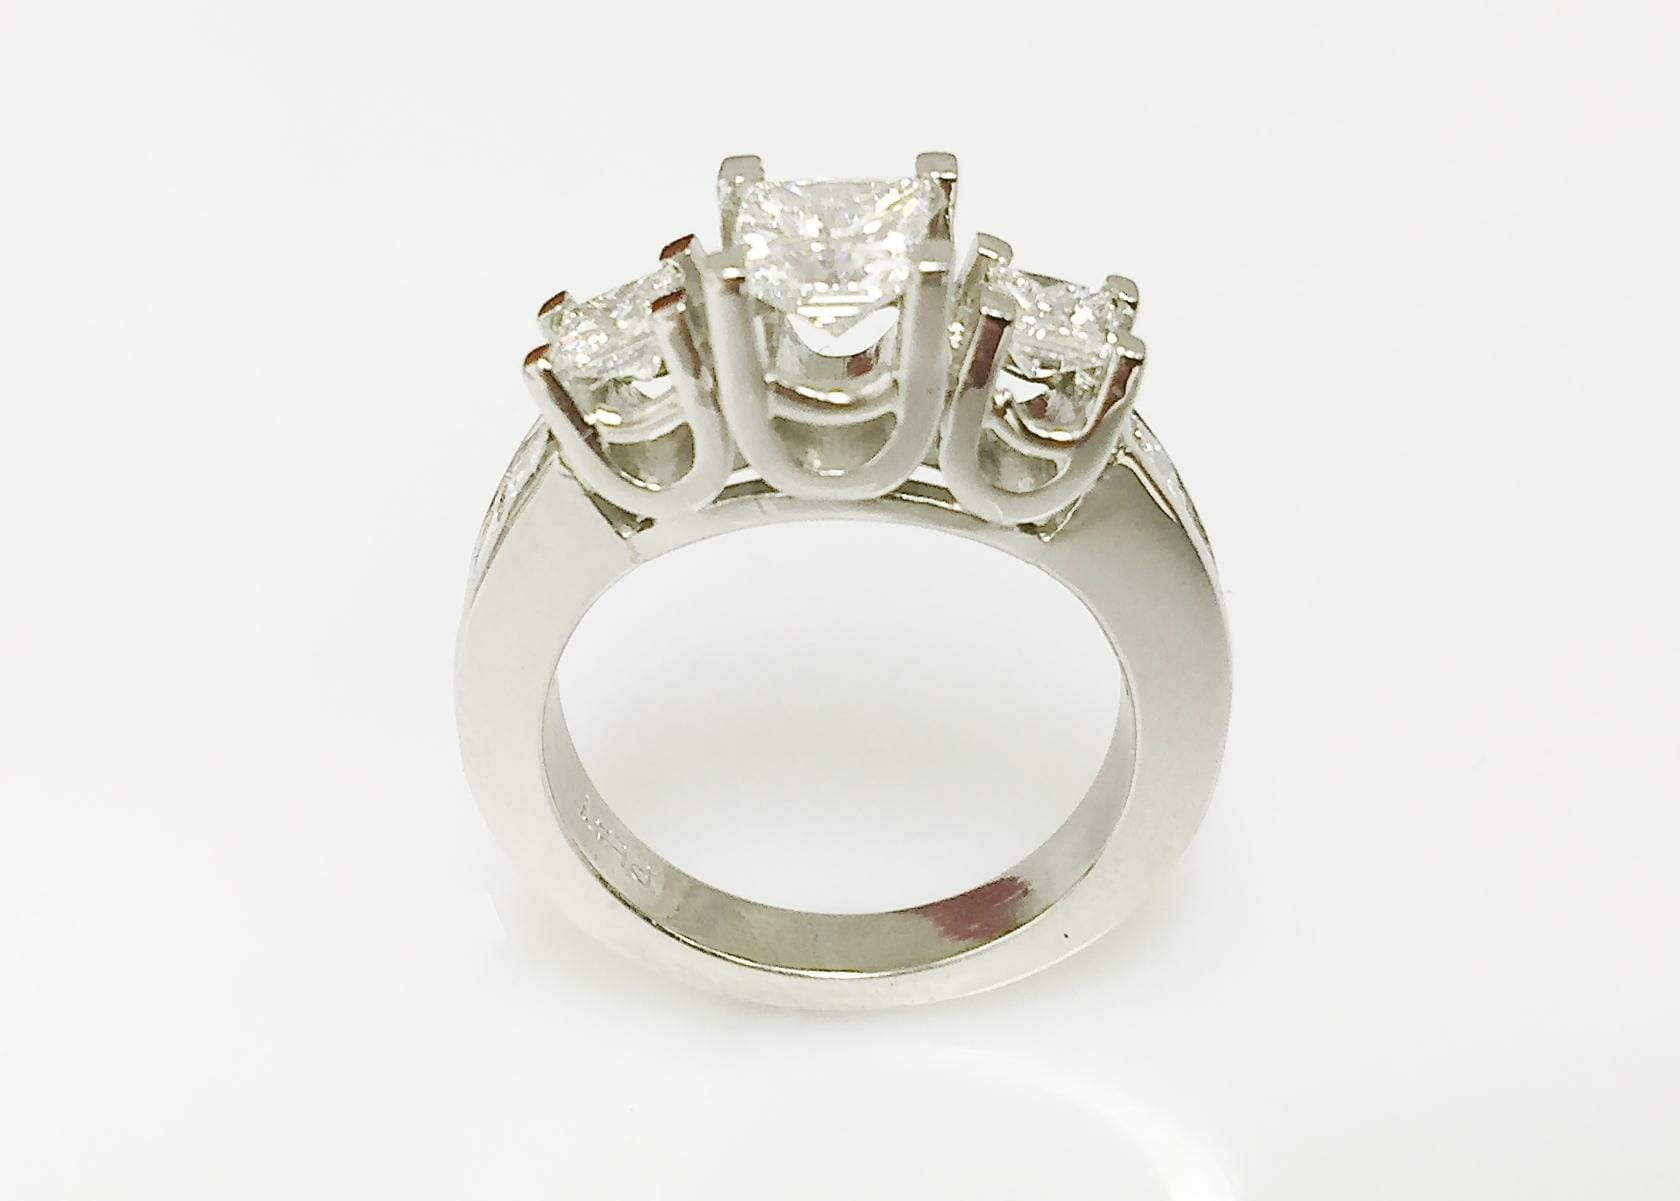 Mary platinum three stone ring with side diamonds front view